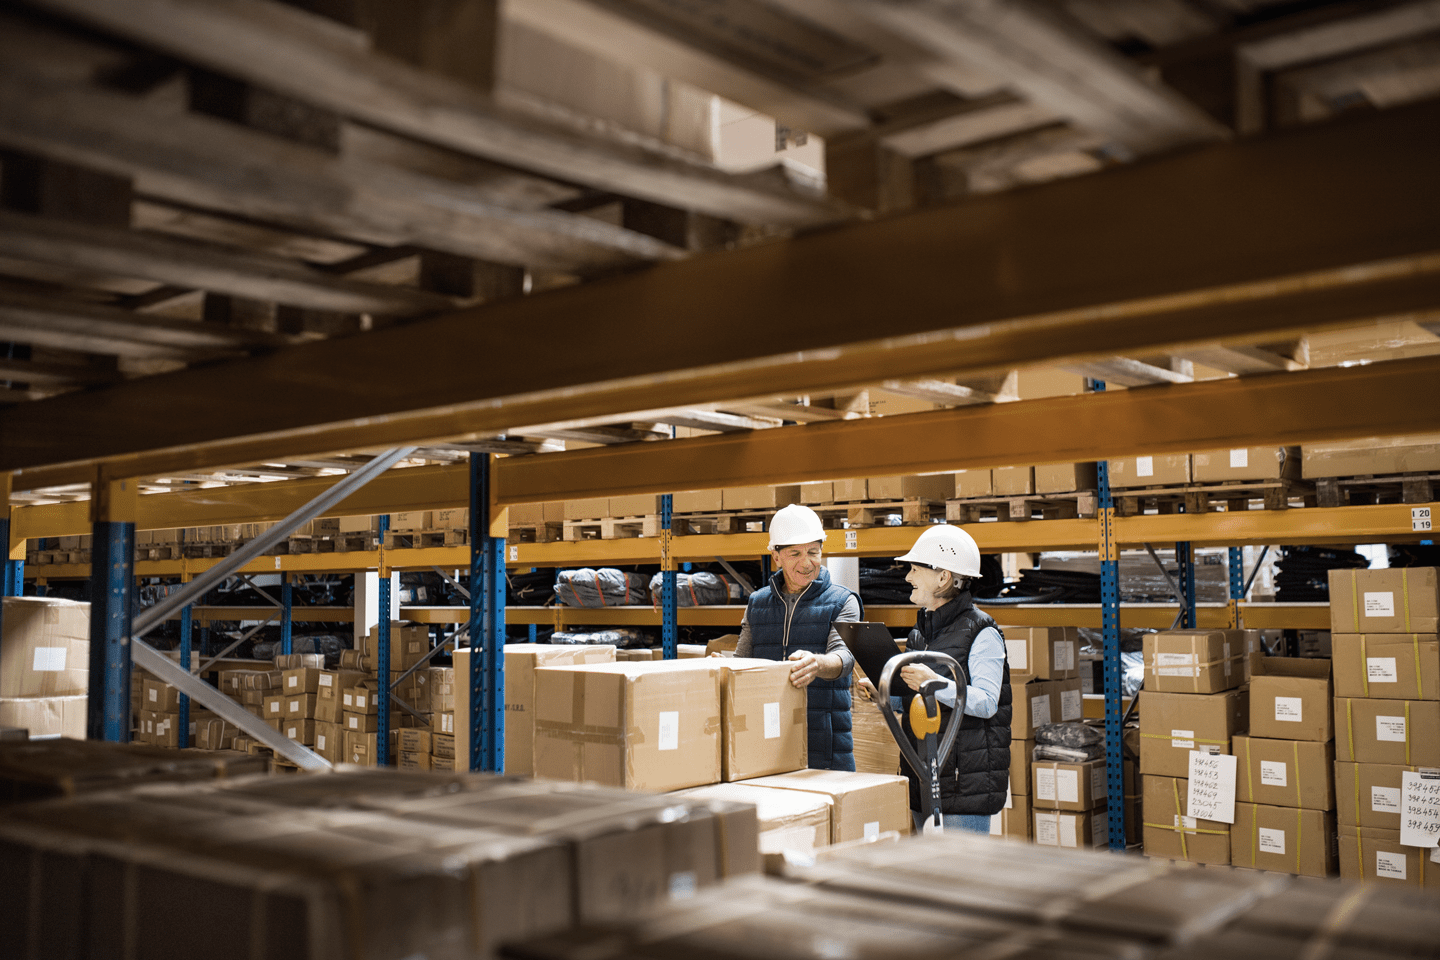 Workers checking boxes at warehouse